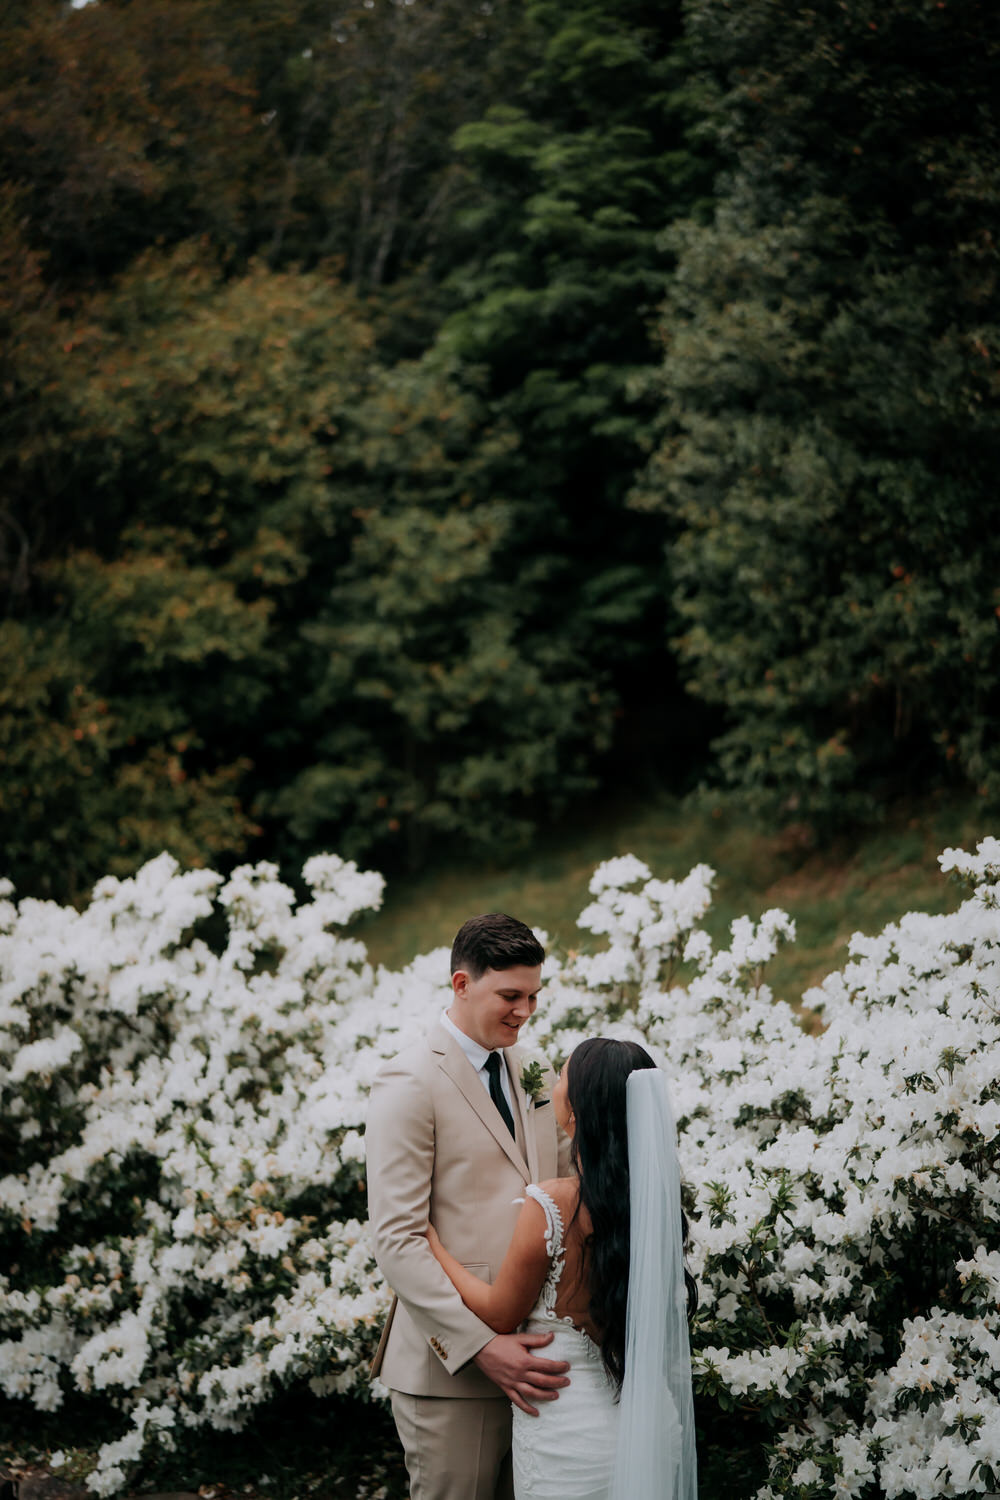 ava-me-photography-nat-kyle-illawarra-rhododendron-gardens-city-beach-wollongong-wedding-620